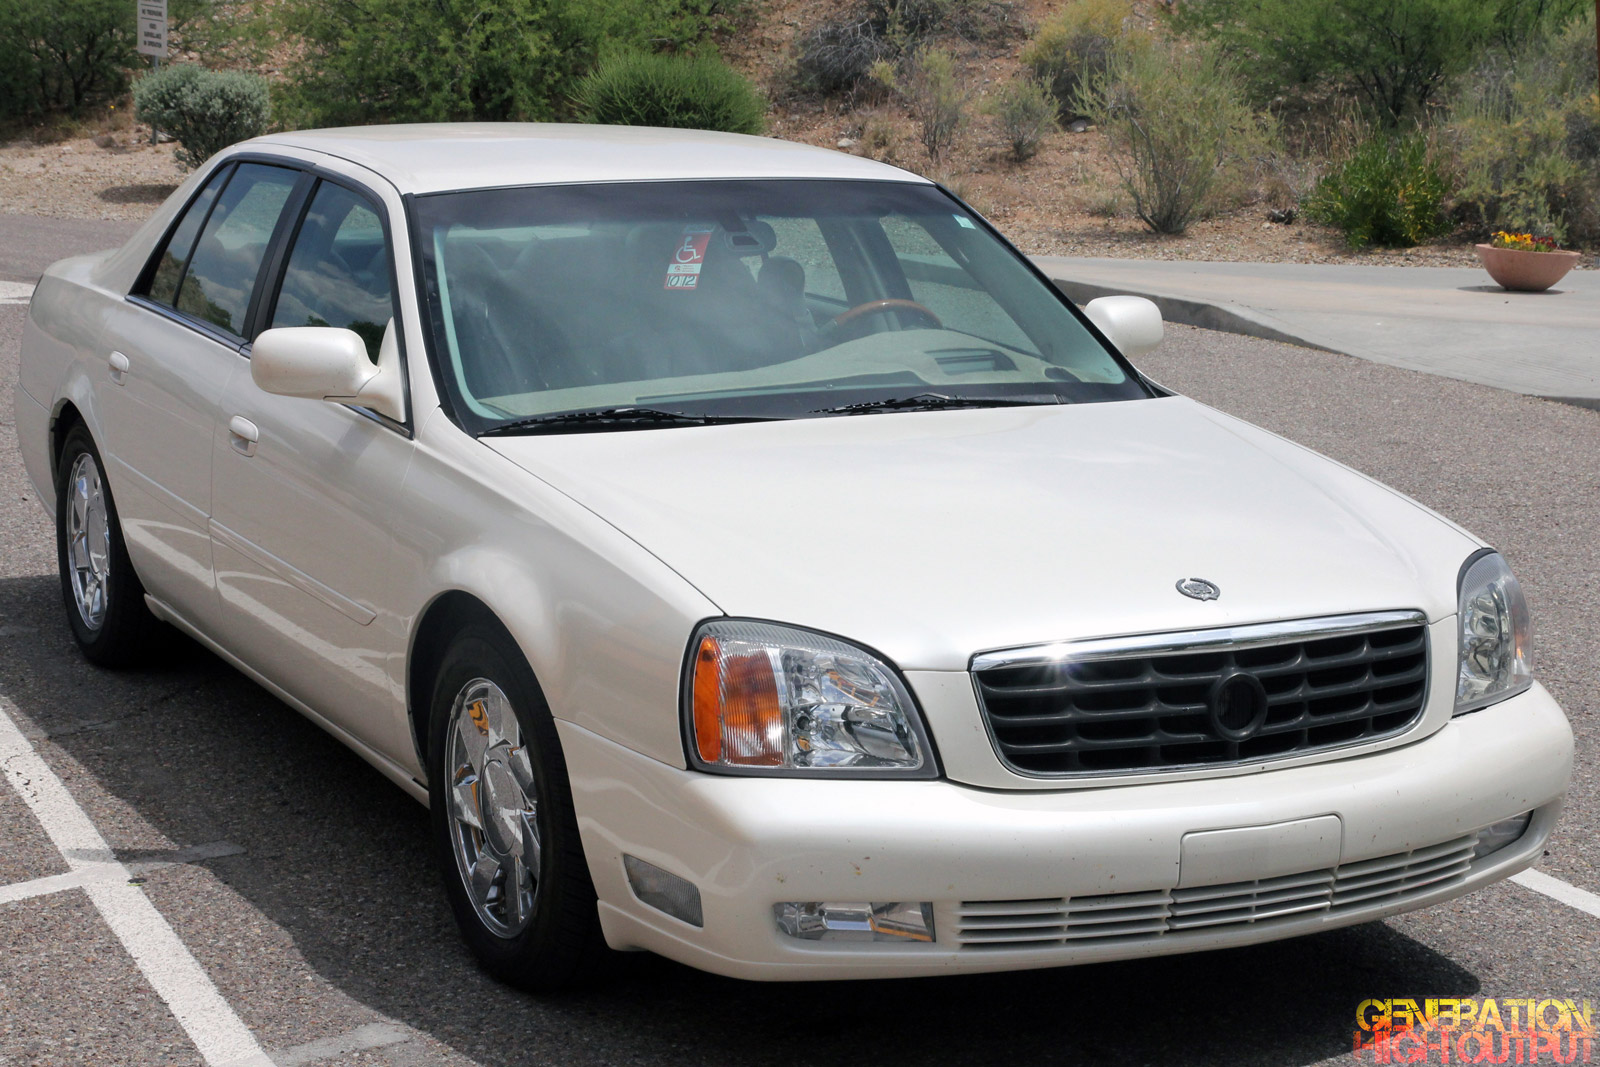 2000 Cadillac Deville DTS (Thermal) Night Vision System ...